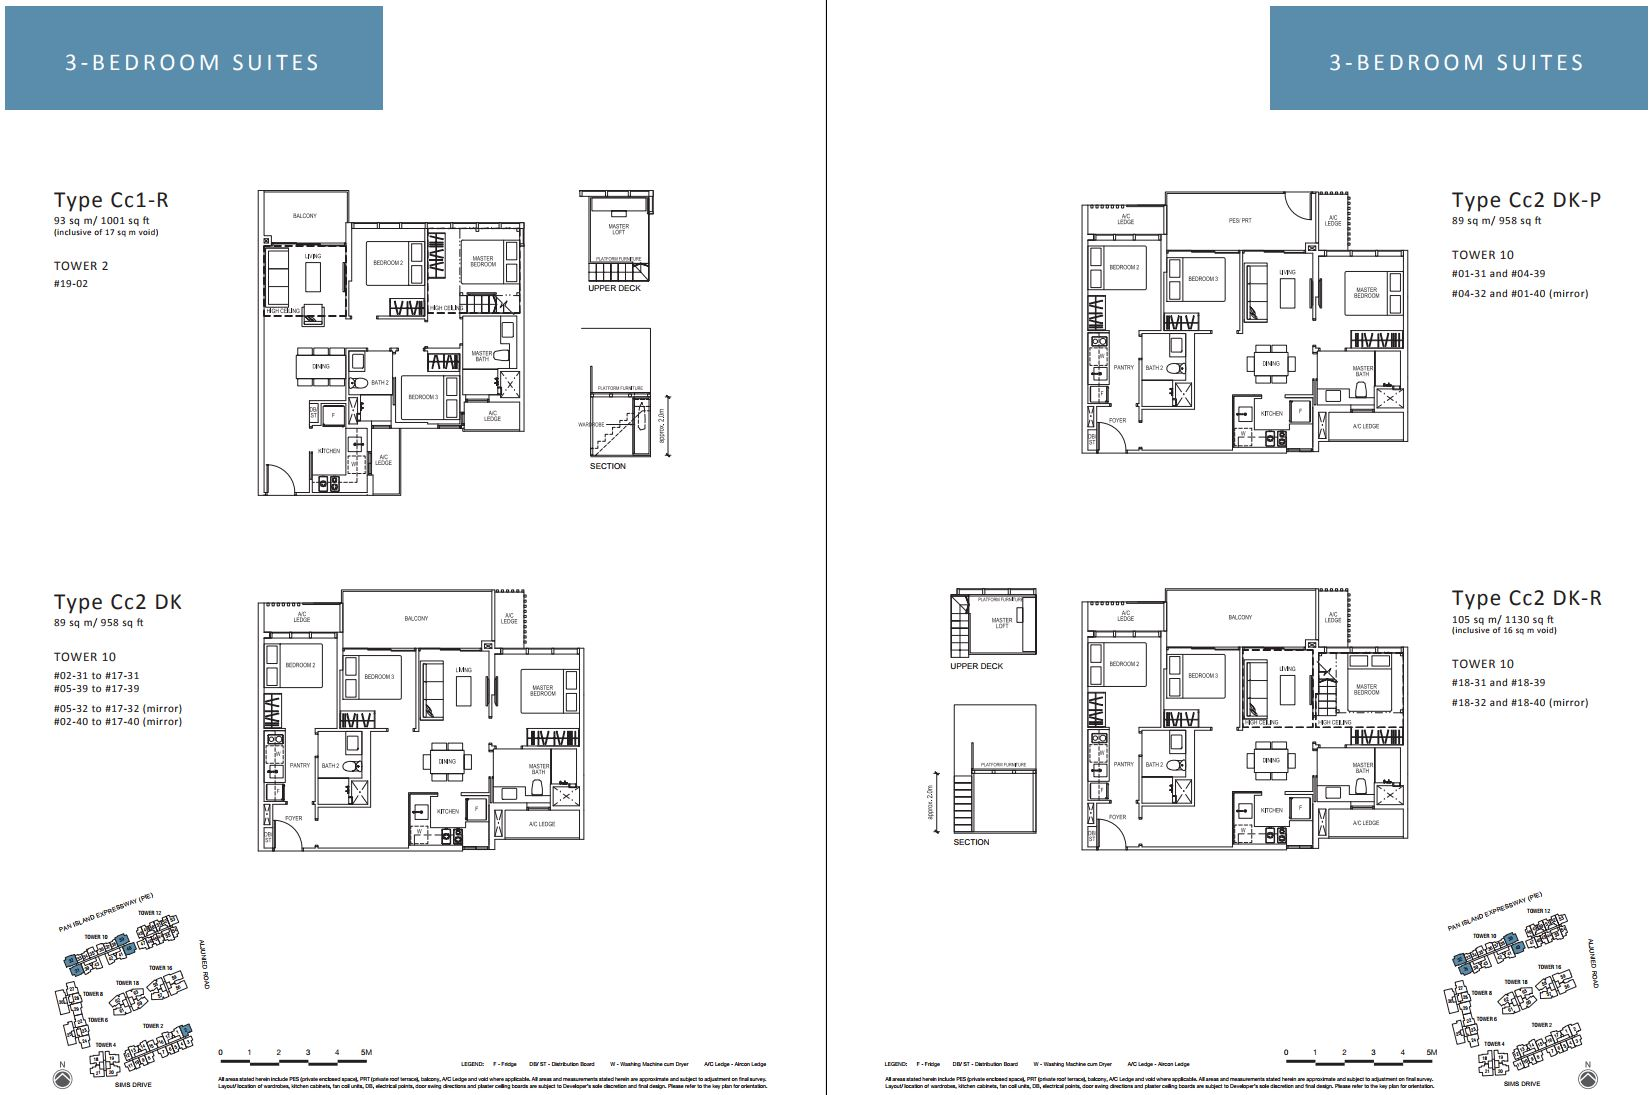 Sims Urban Oasis FloorPlan - 3 Bedroom Suites